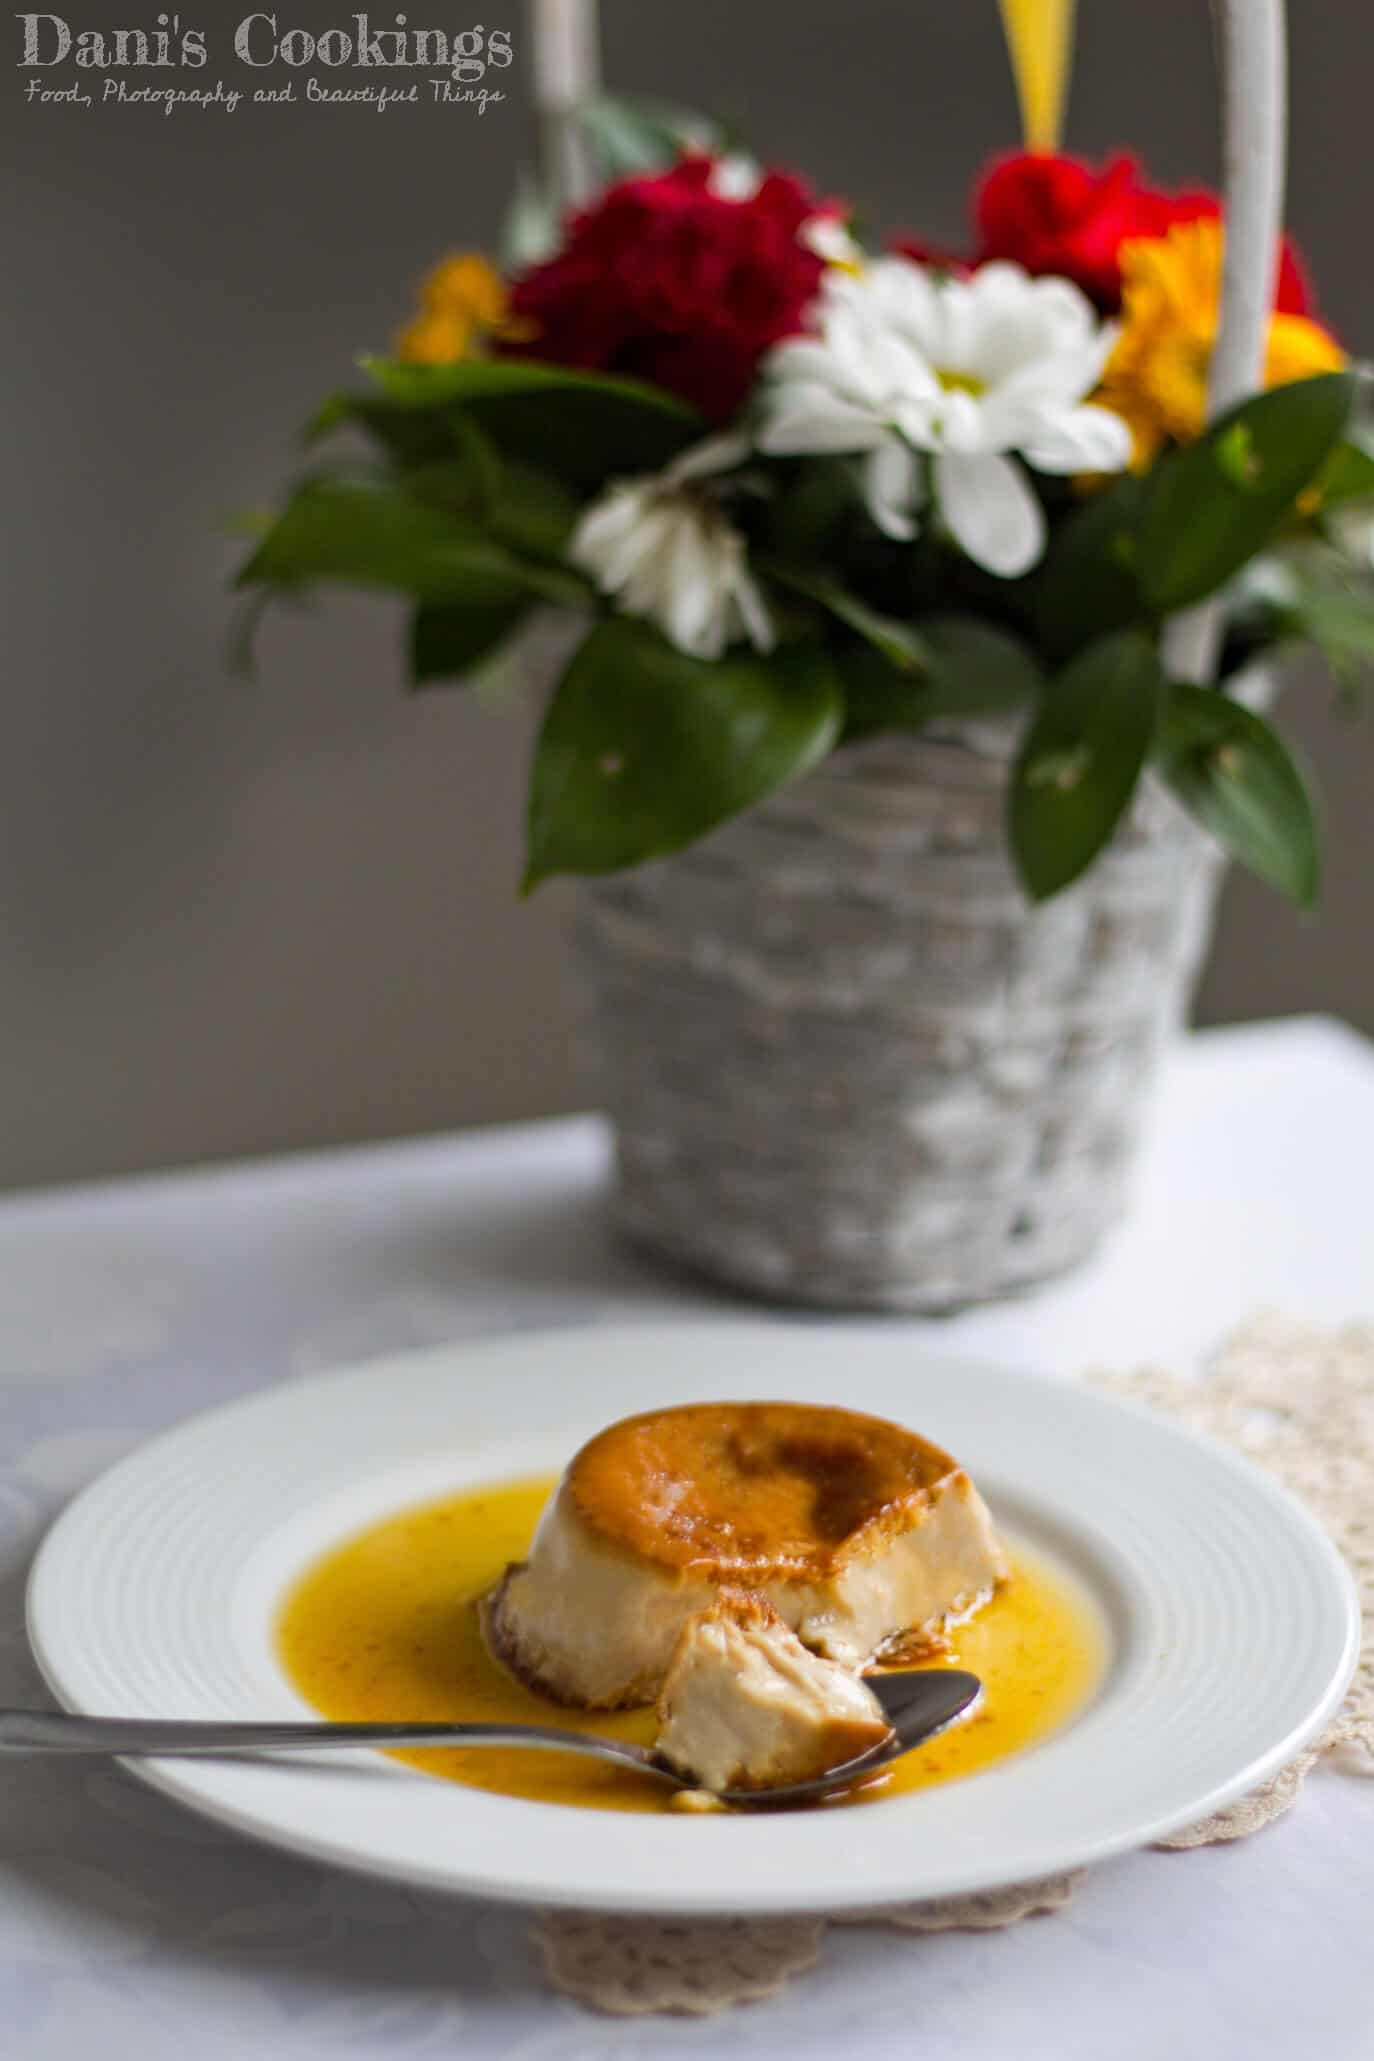 creme caramel eaten on a plate with flowers aside